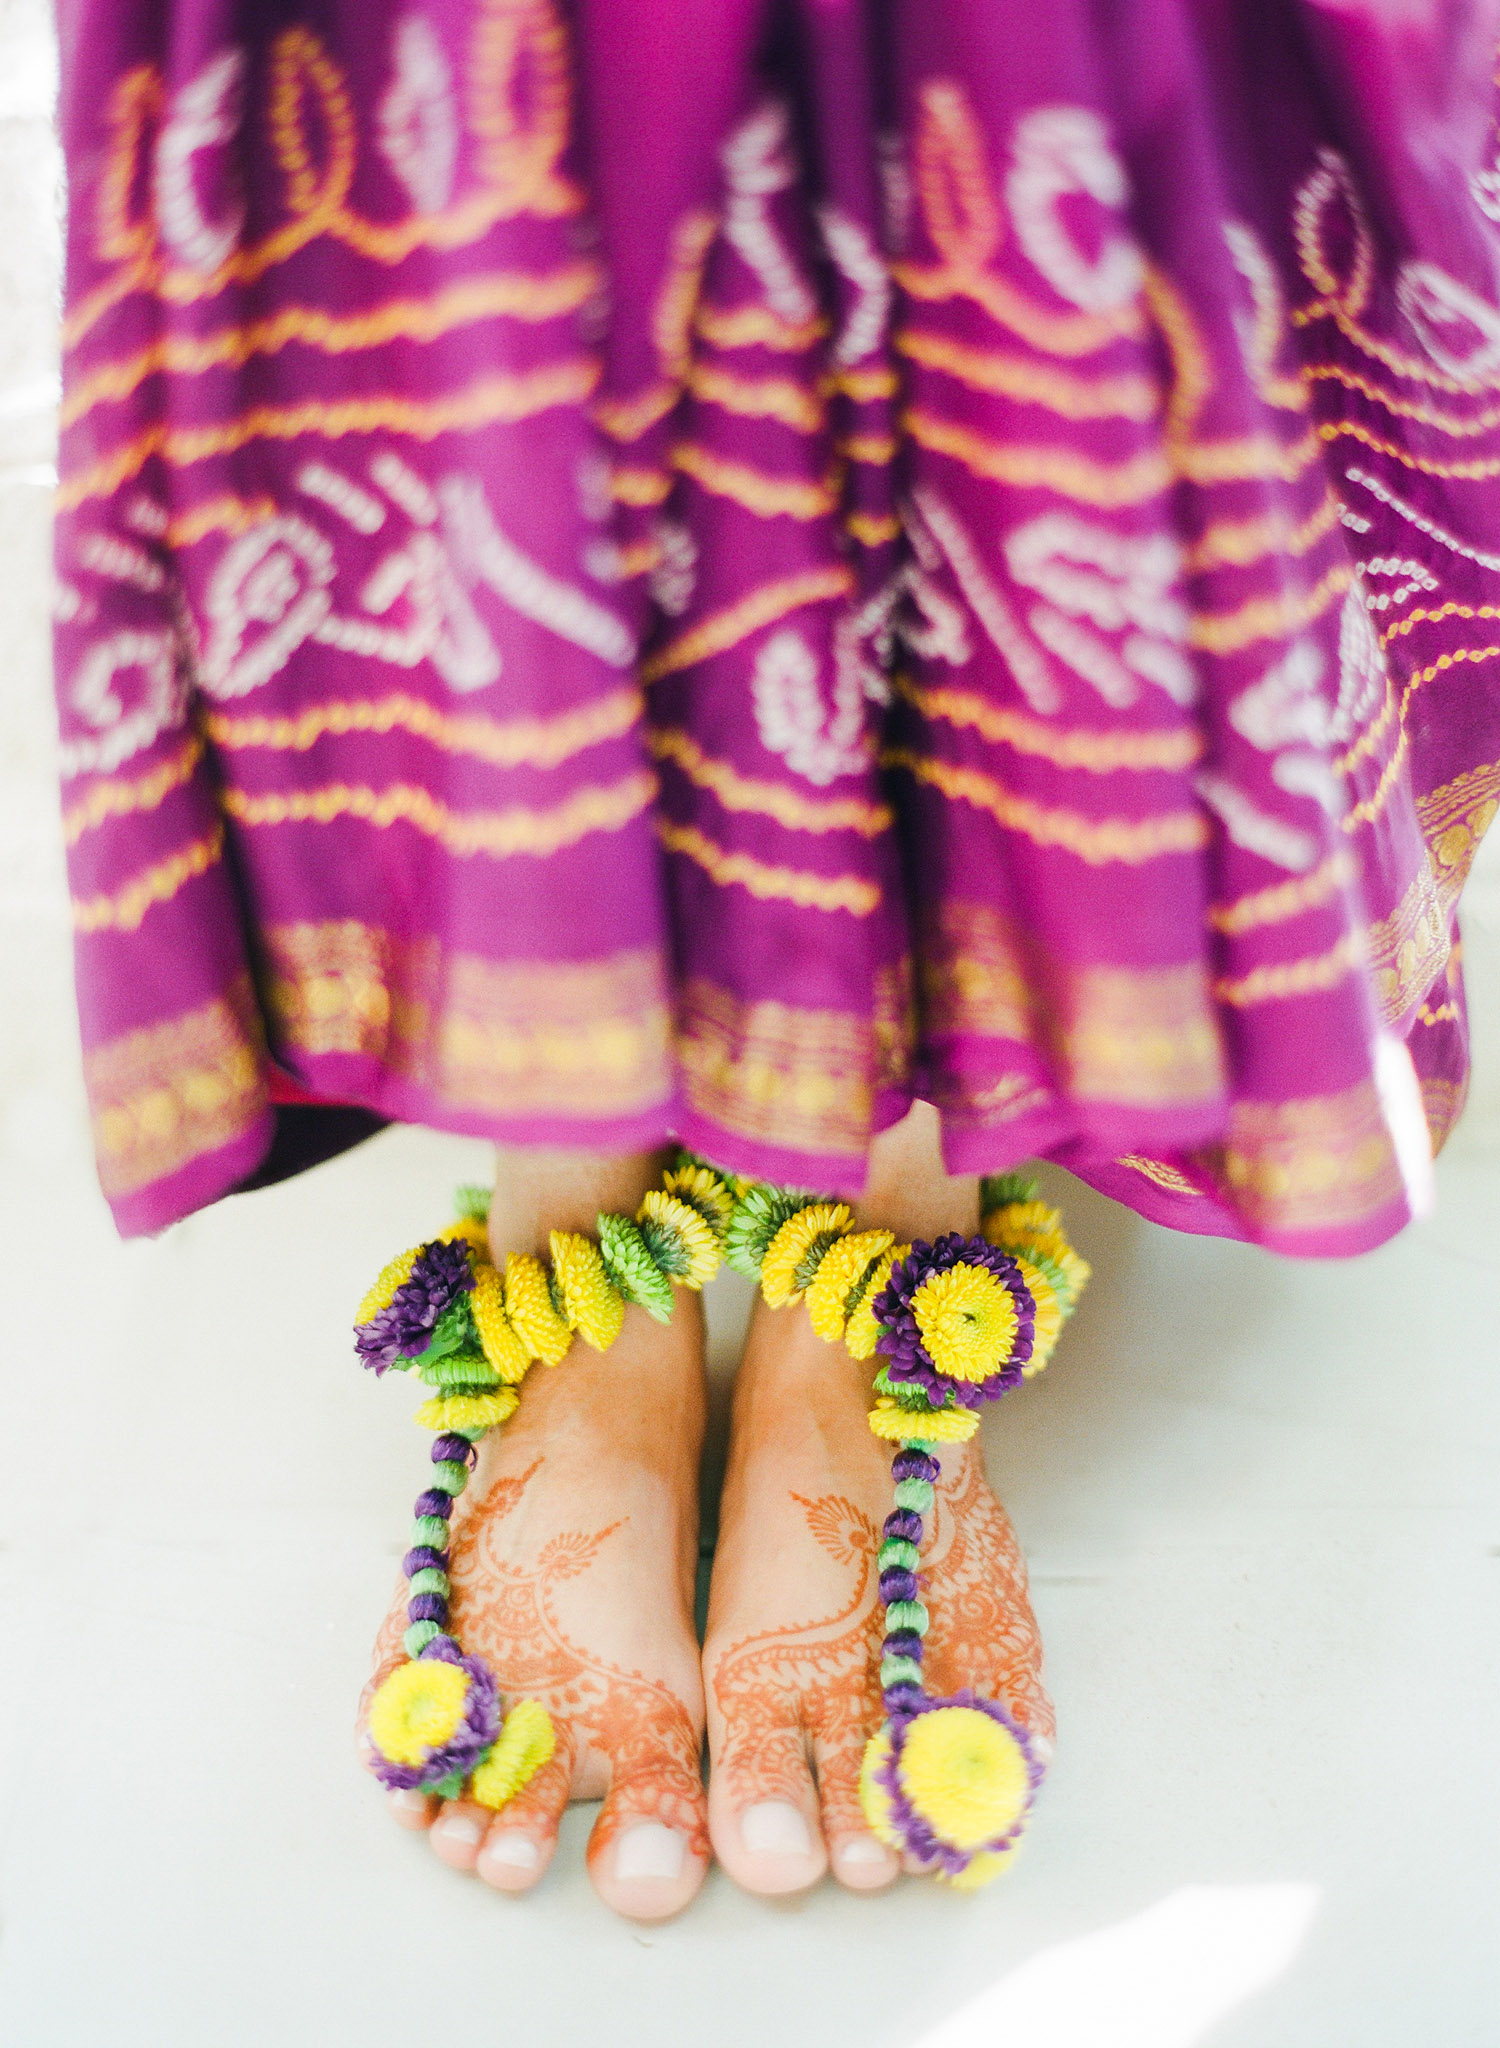 foot jewelry for this indian wedding is actually made of flowers- a floral indian anklet - for this hindu wedding in palm coast florida at the hammock beach resort photographed by Destination Wedding photographer Lexia Frank, a top indian wedding photographer who shoots film for weddings with medium format cameras for her luxury indian weddings worldwide